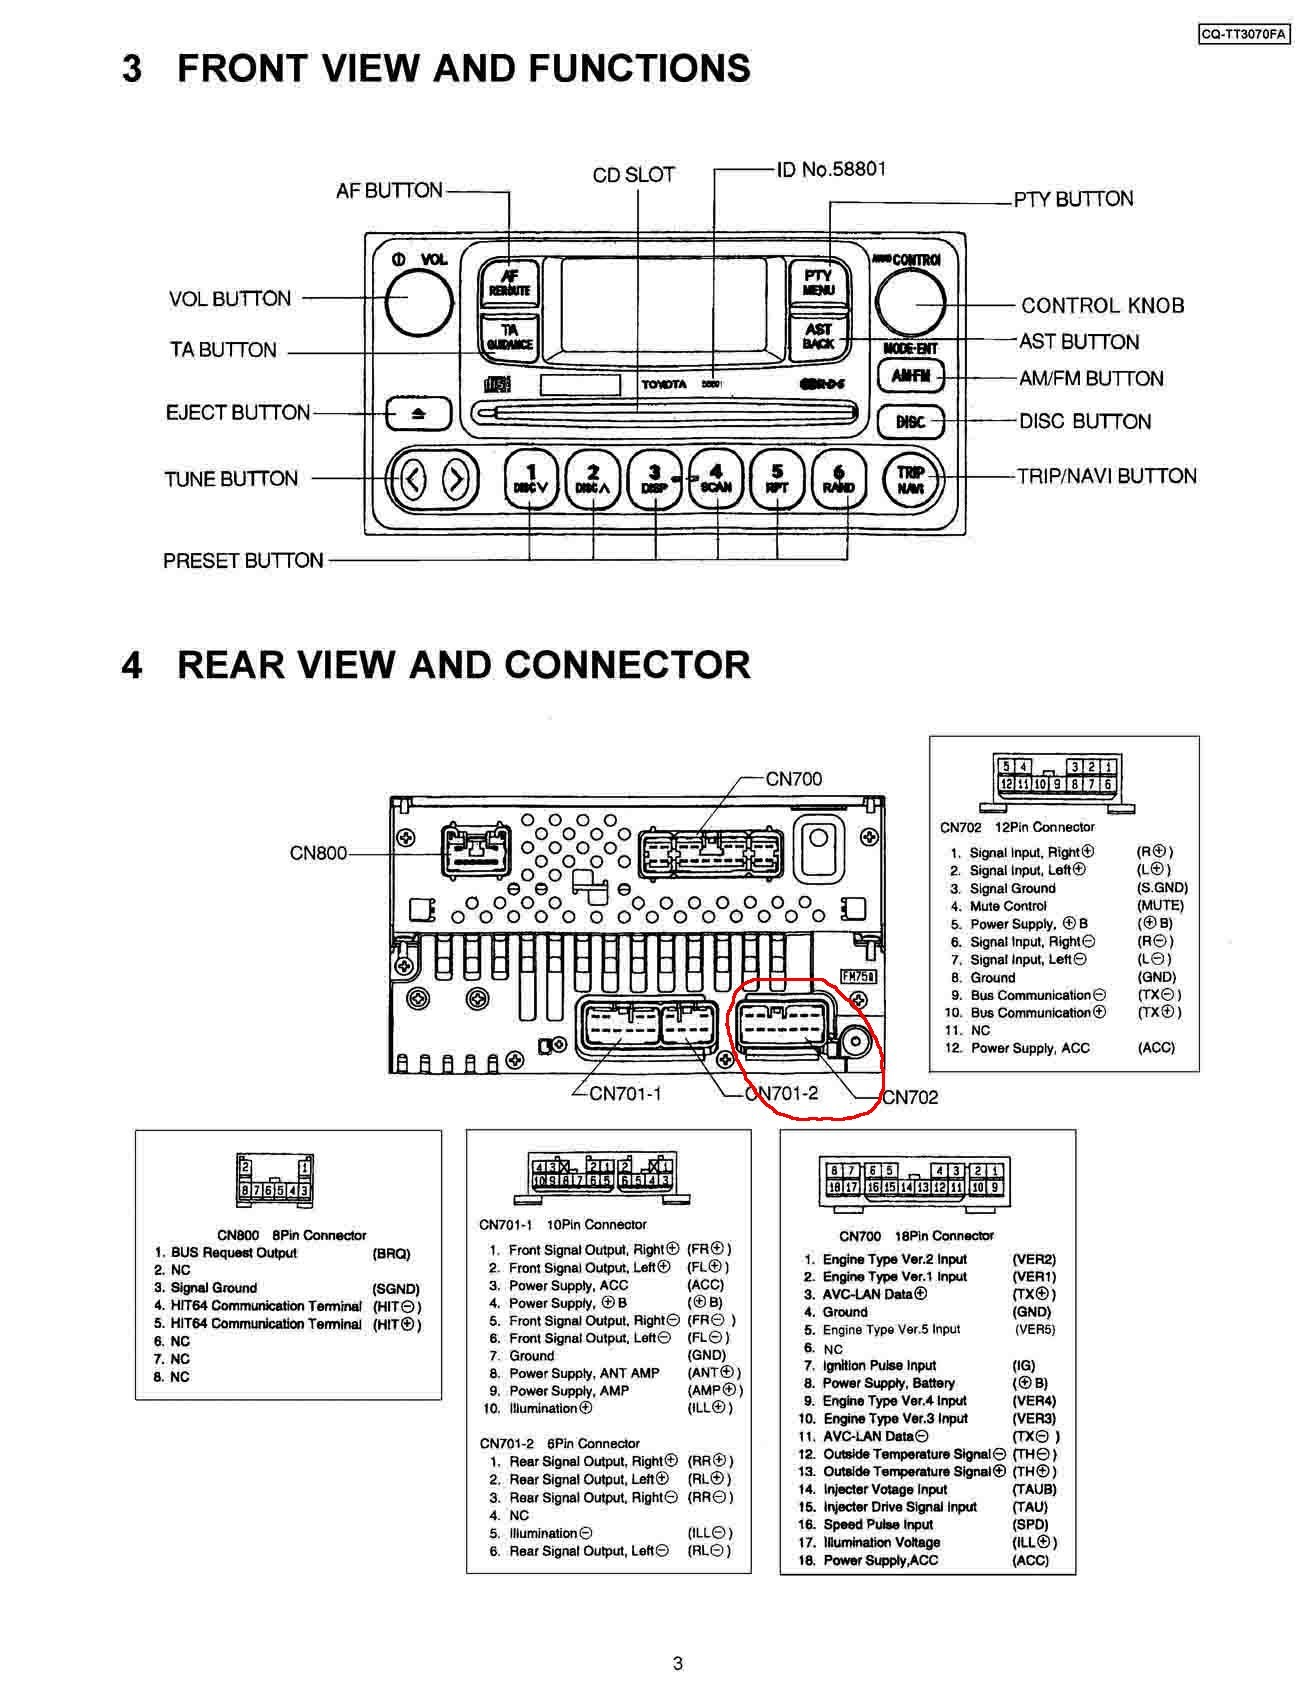 Fujitsu Ten 86120 Wiring Diagram Toyota 0c020 Magnificent Photos The Best Electrical